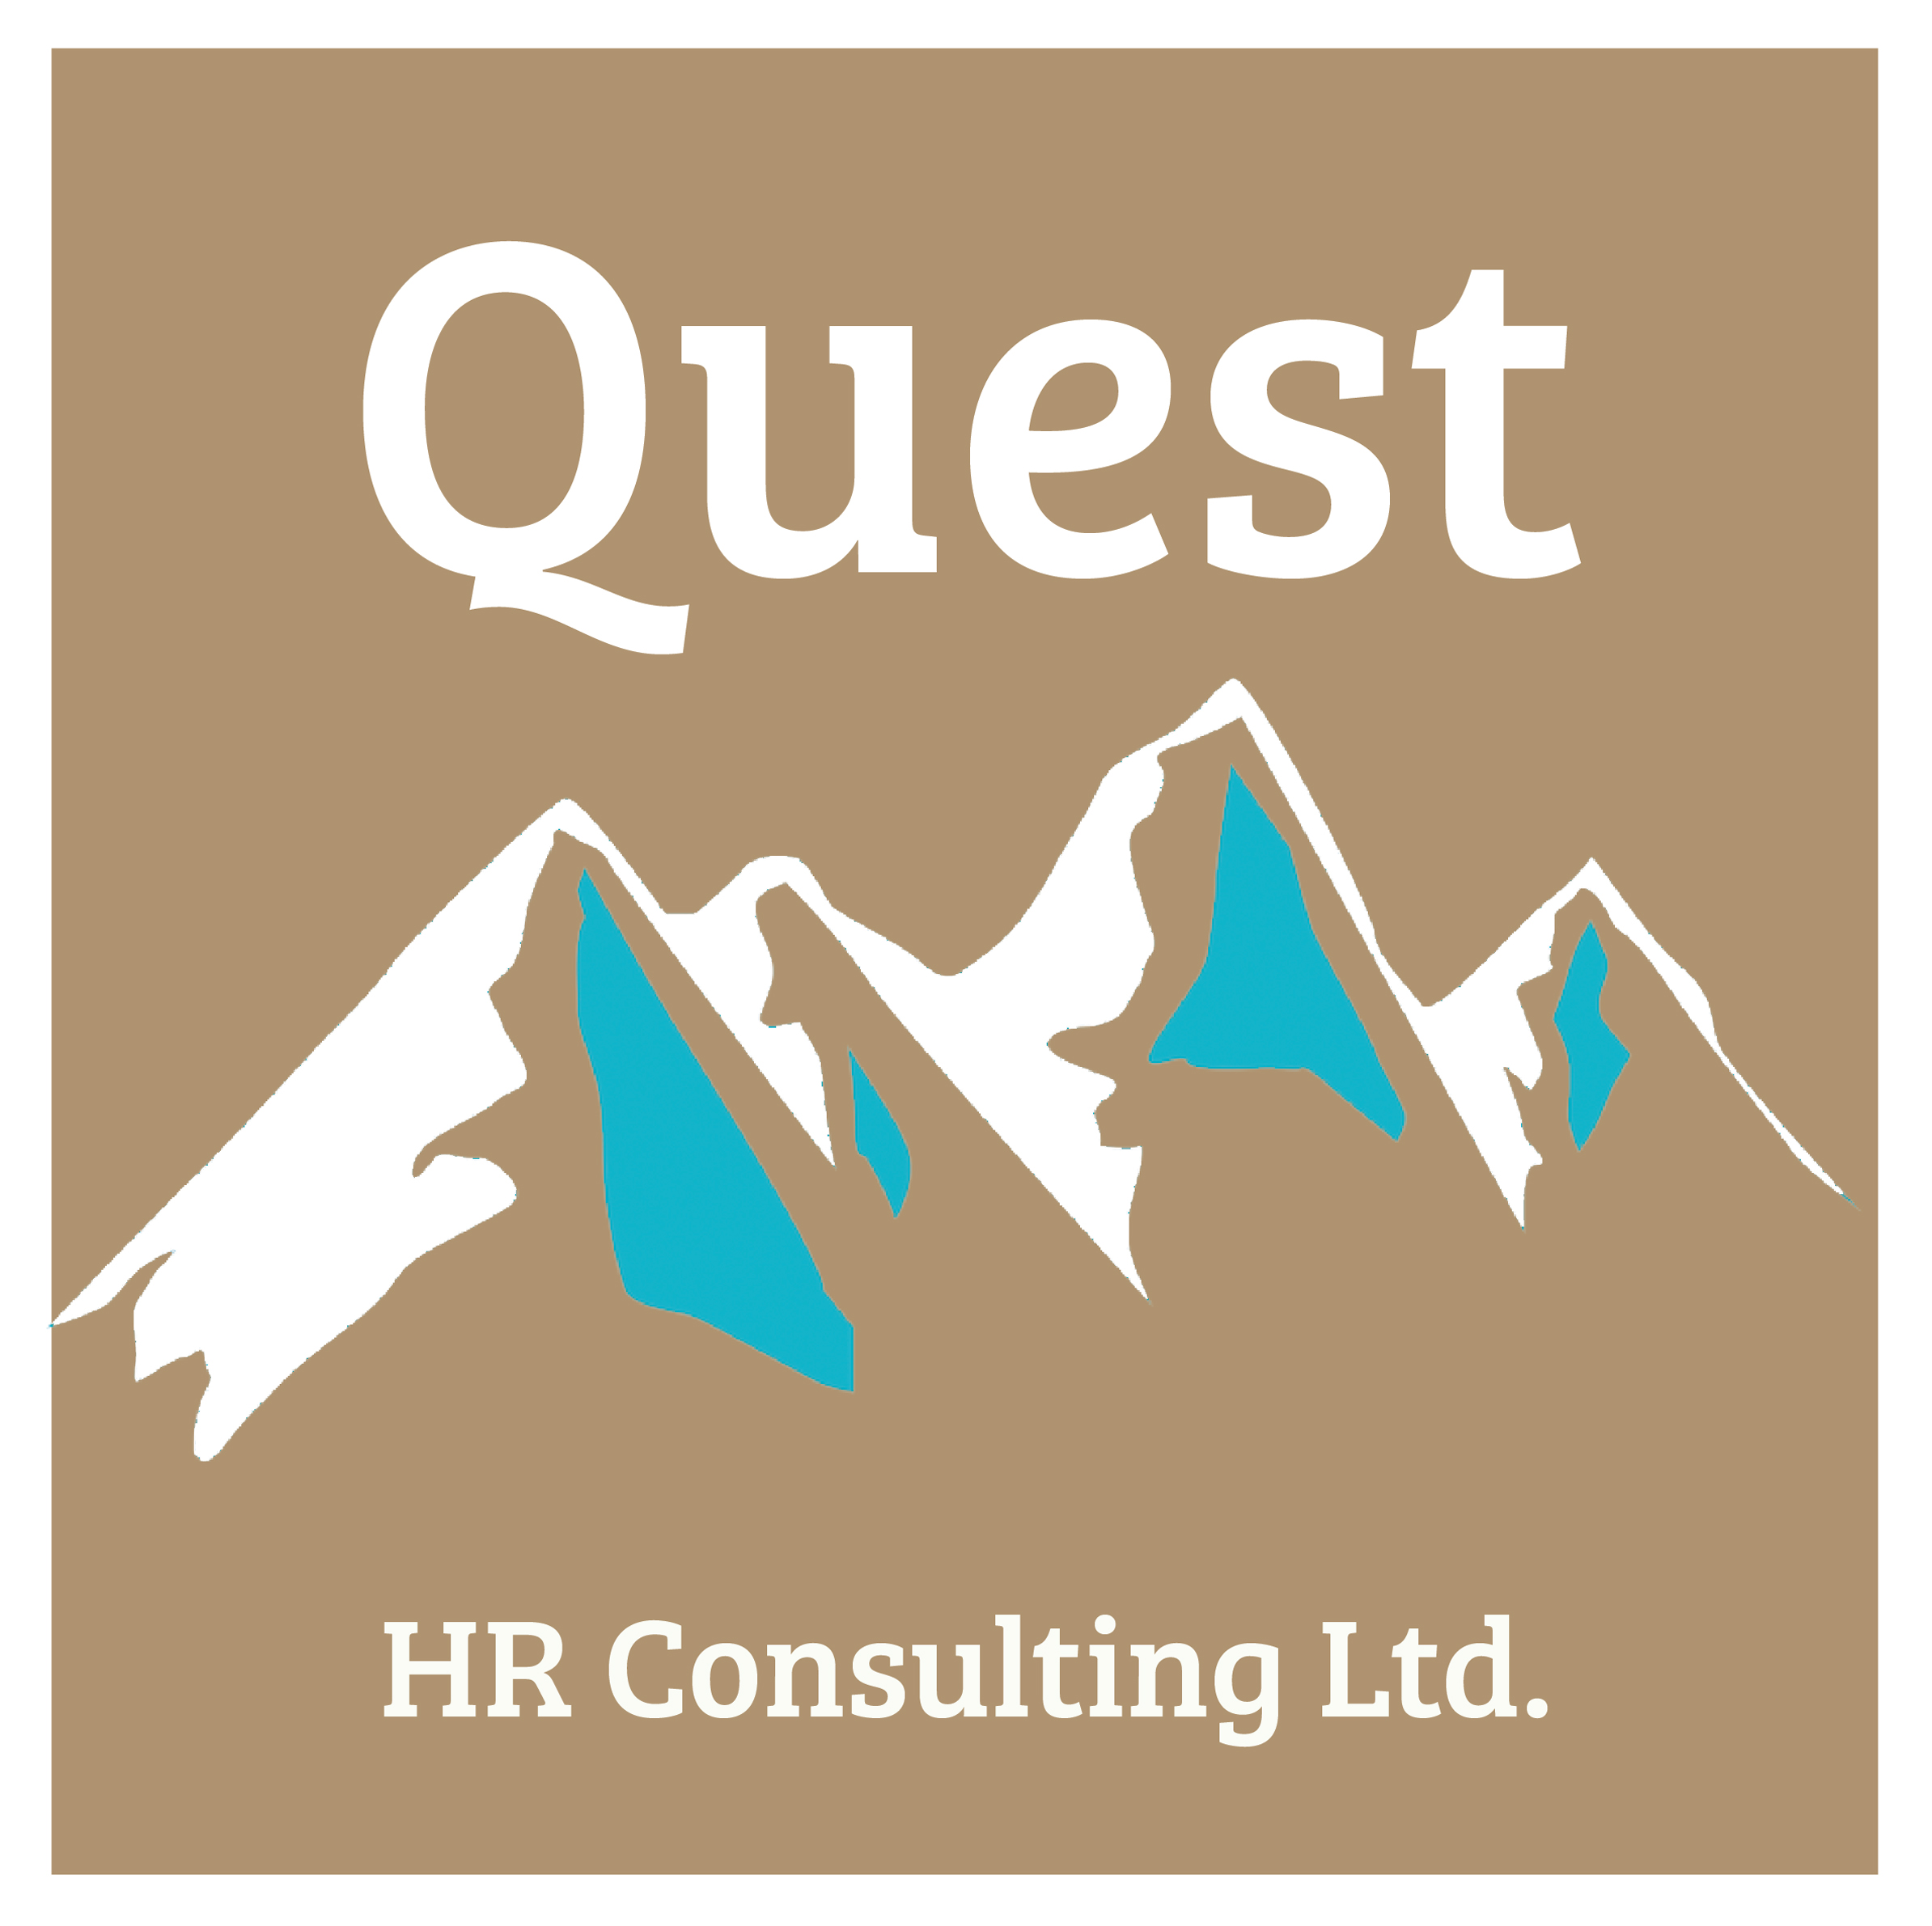 Quest HR Consulting Ltd